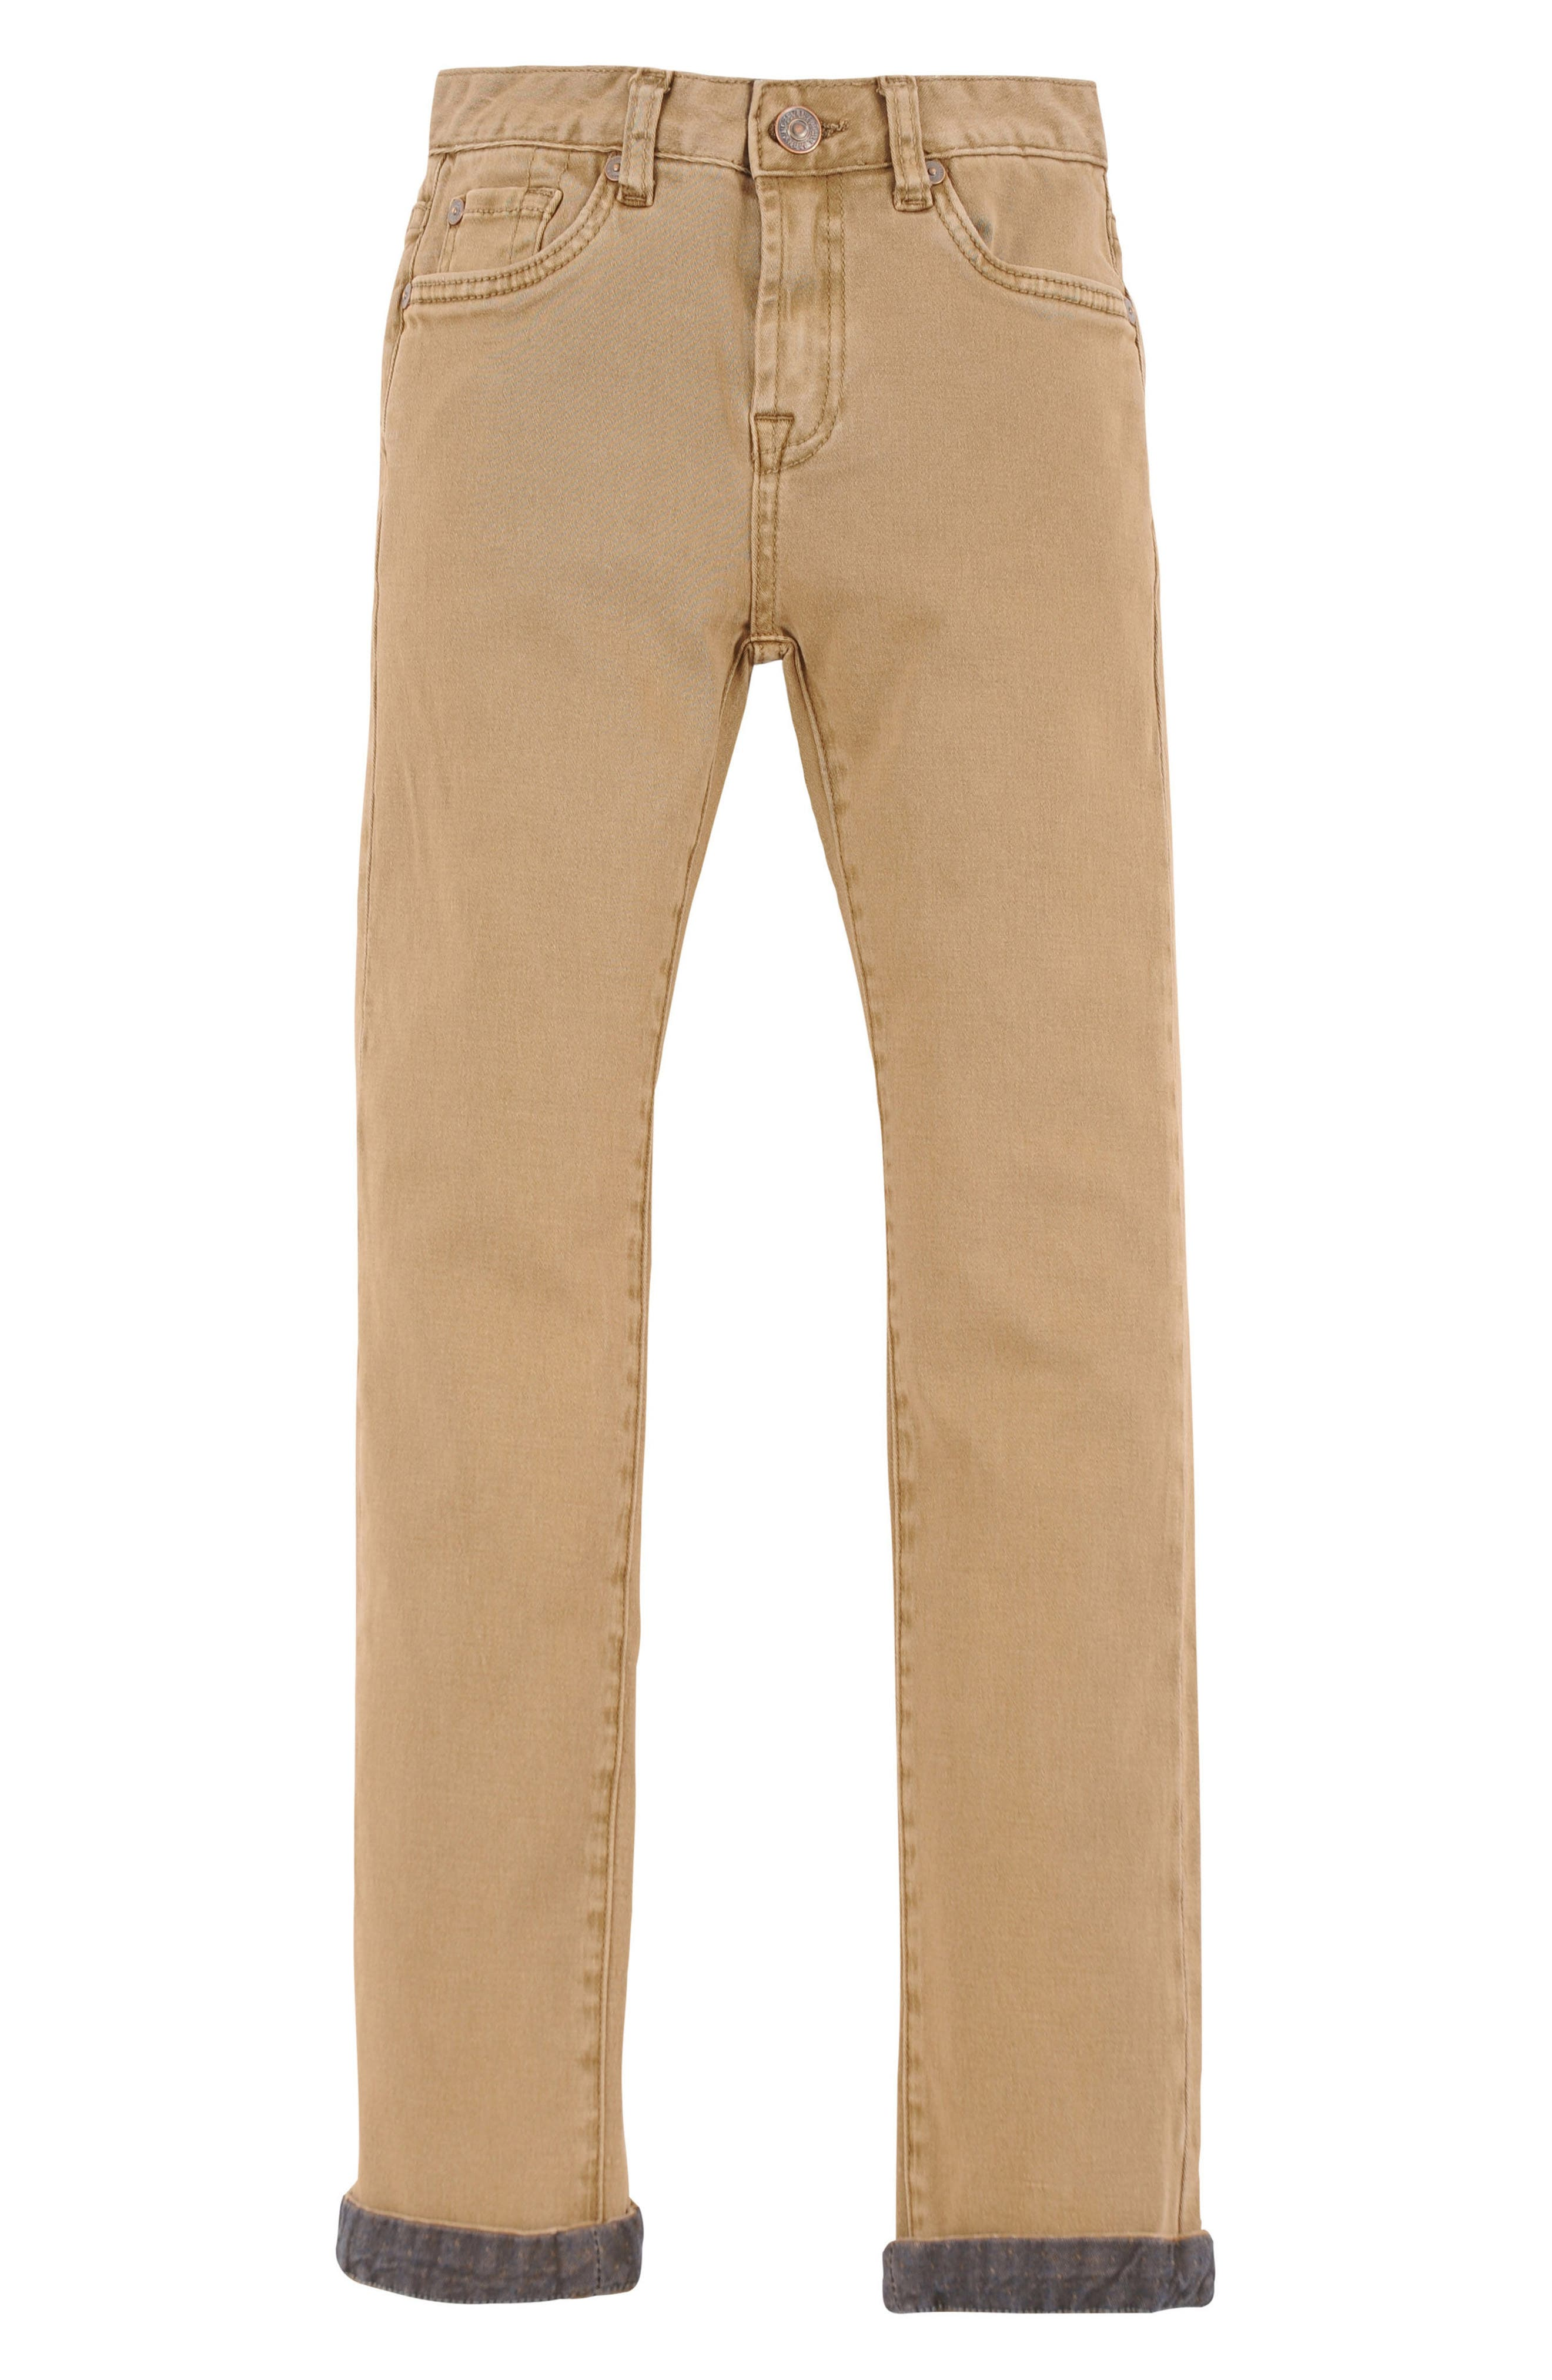 7 For All Mankind® Slimmy Slim Fit Chino Pants (Little Boys)